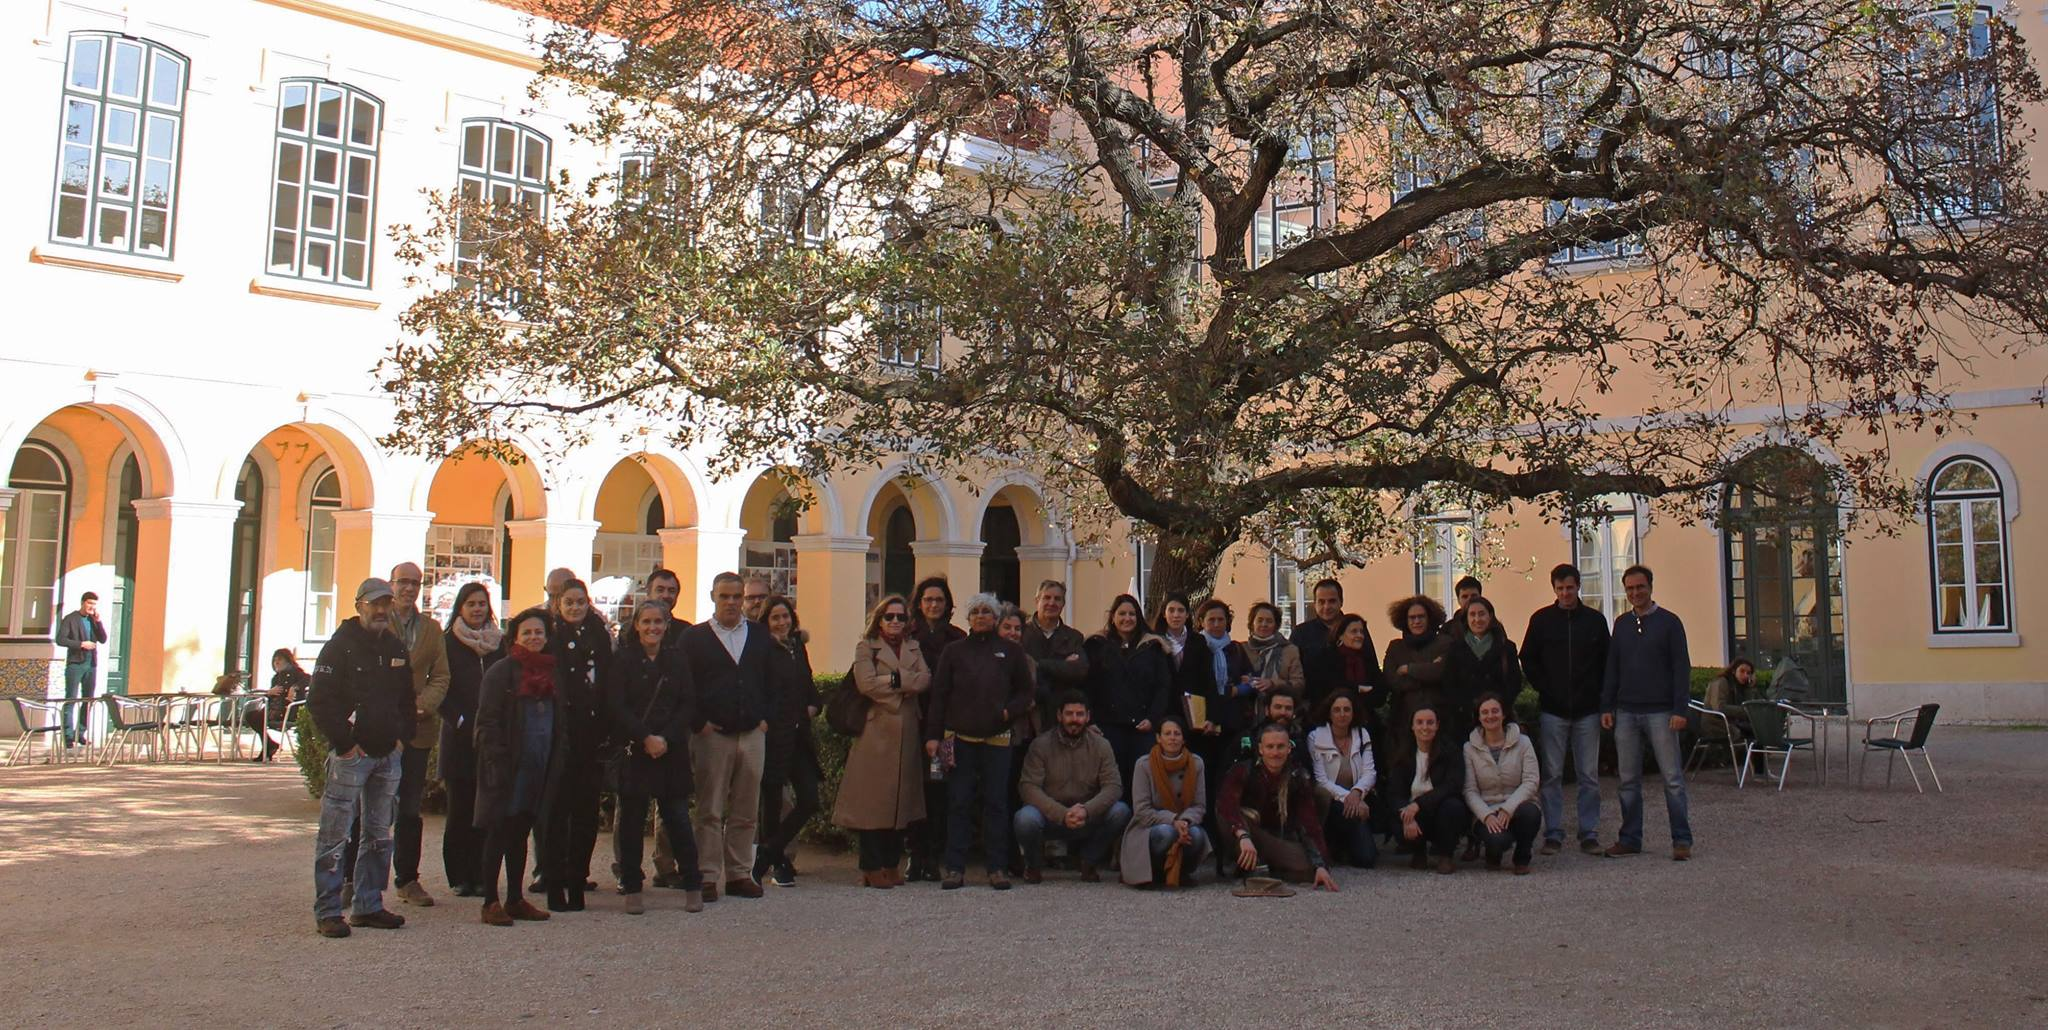 4th RAIN meeting of the AFinet project in Portugal